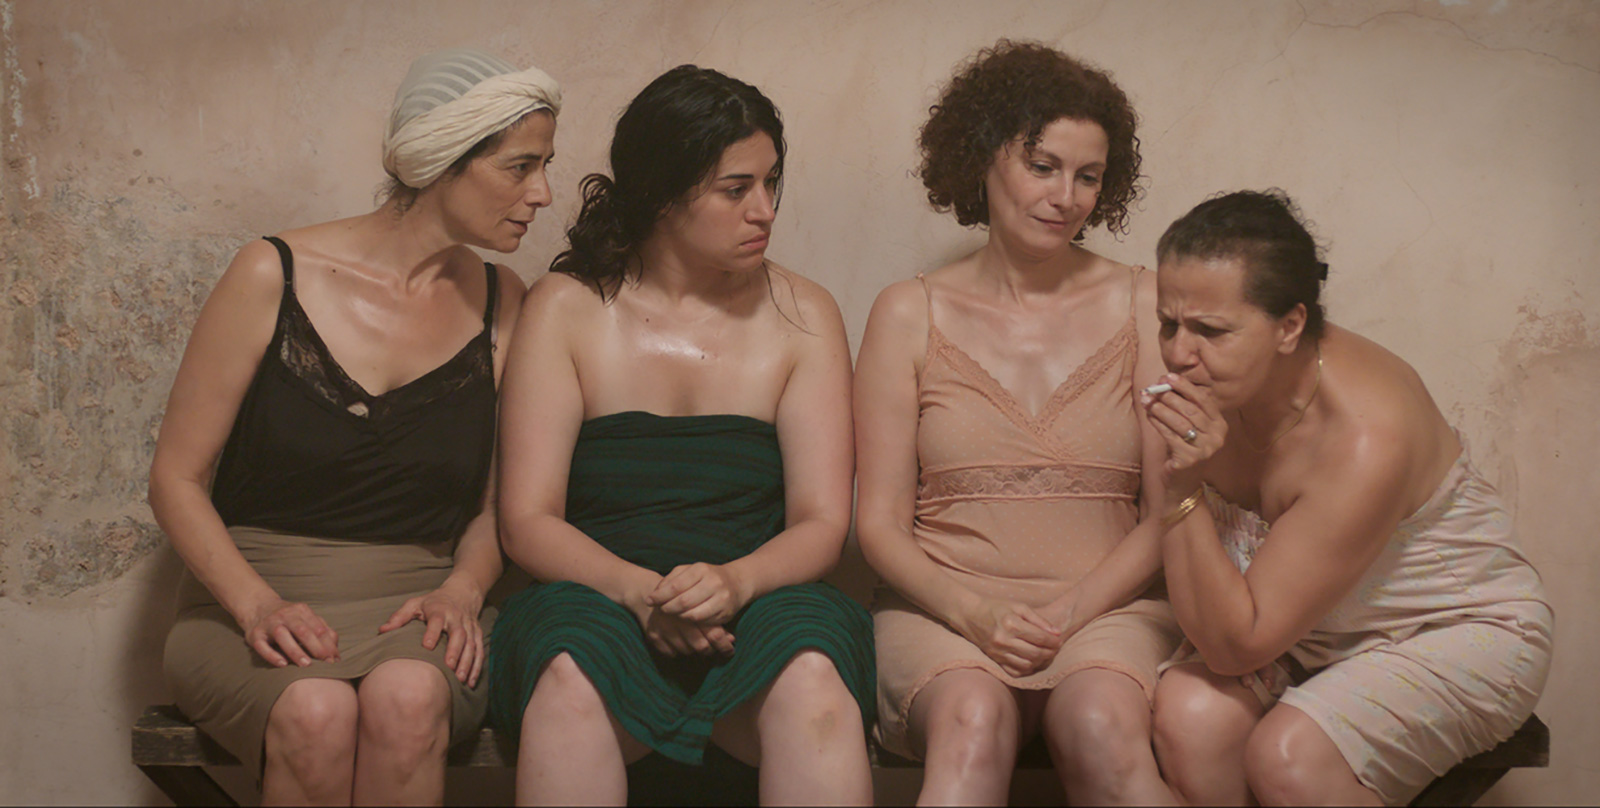 A film still of women in a public bath.